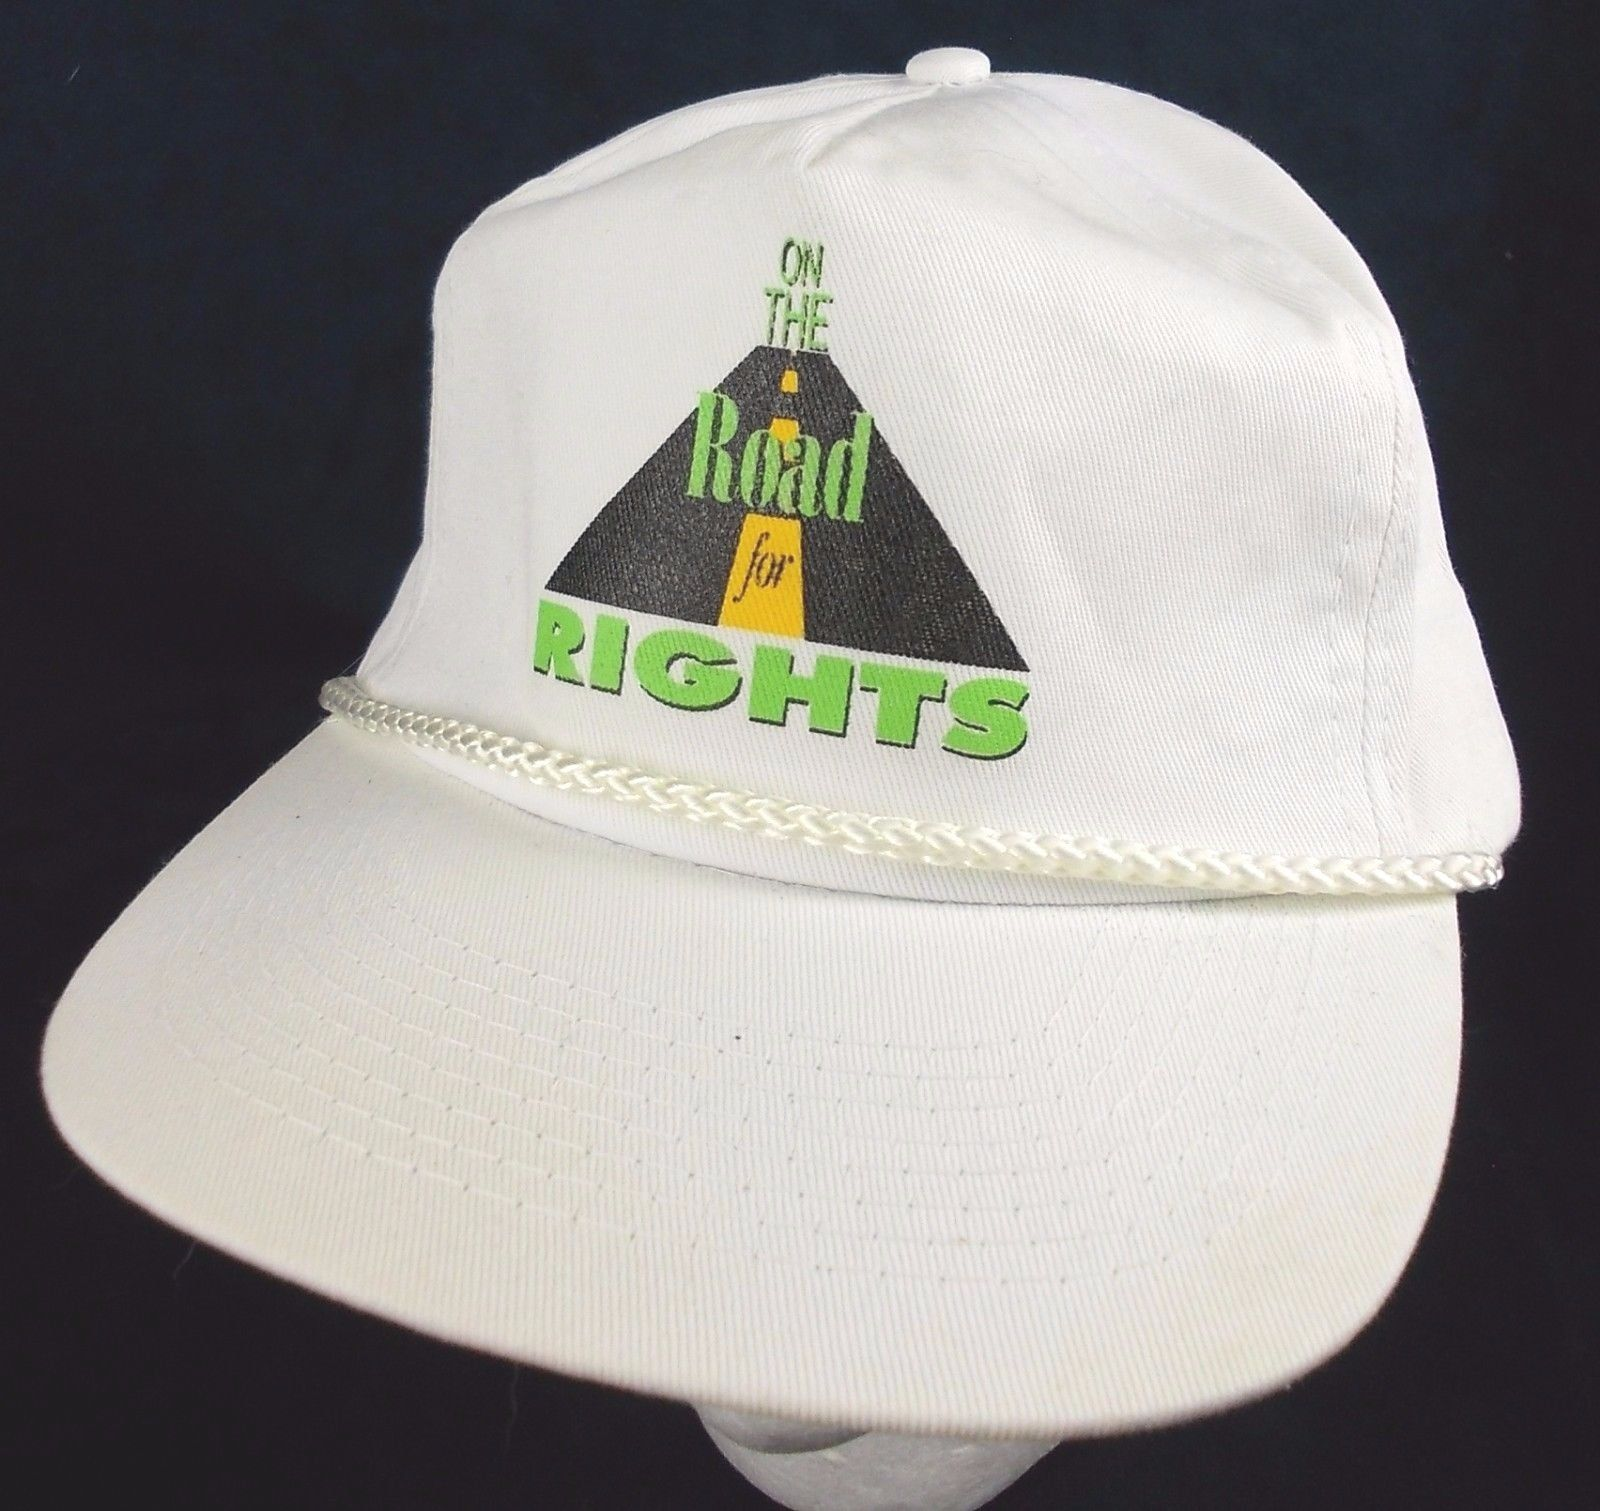 686738eb8ce39 On the Road for Rights Hat Ajustable White and 46 similar items